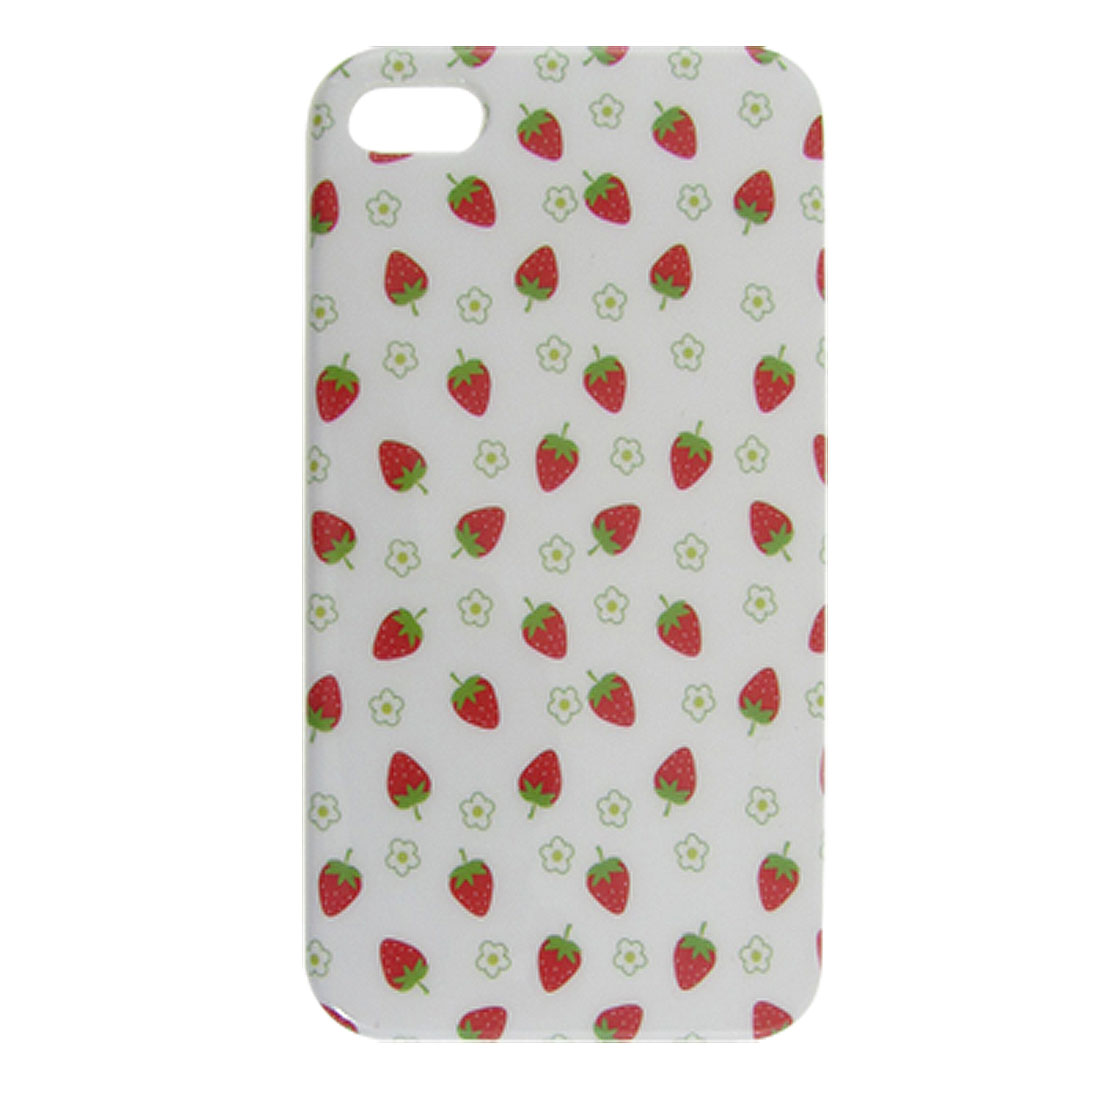 Green Flower Red Strawberry Print IMD White Plastic Cover for iPhone 4 4G 4GS